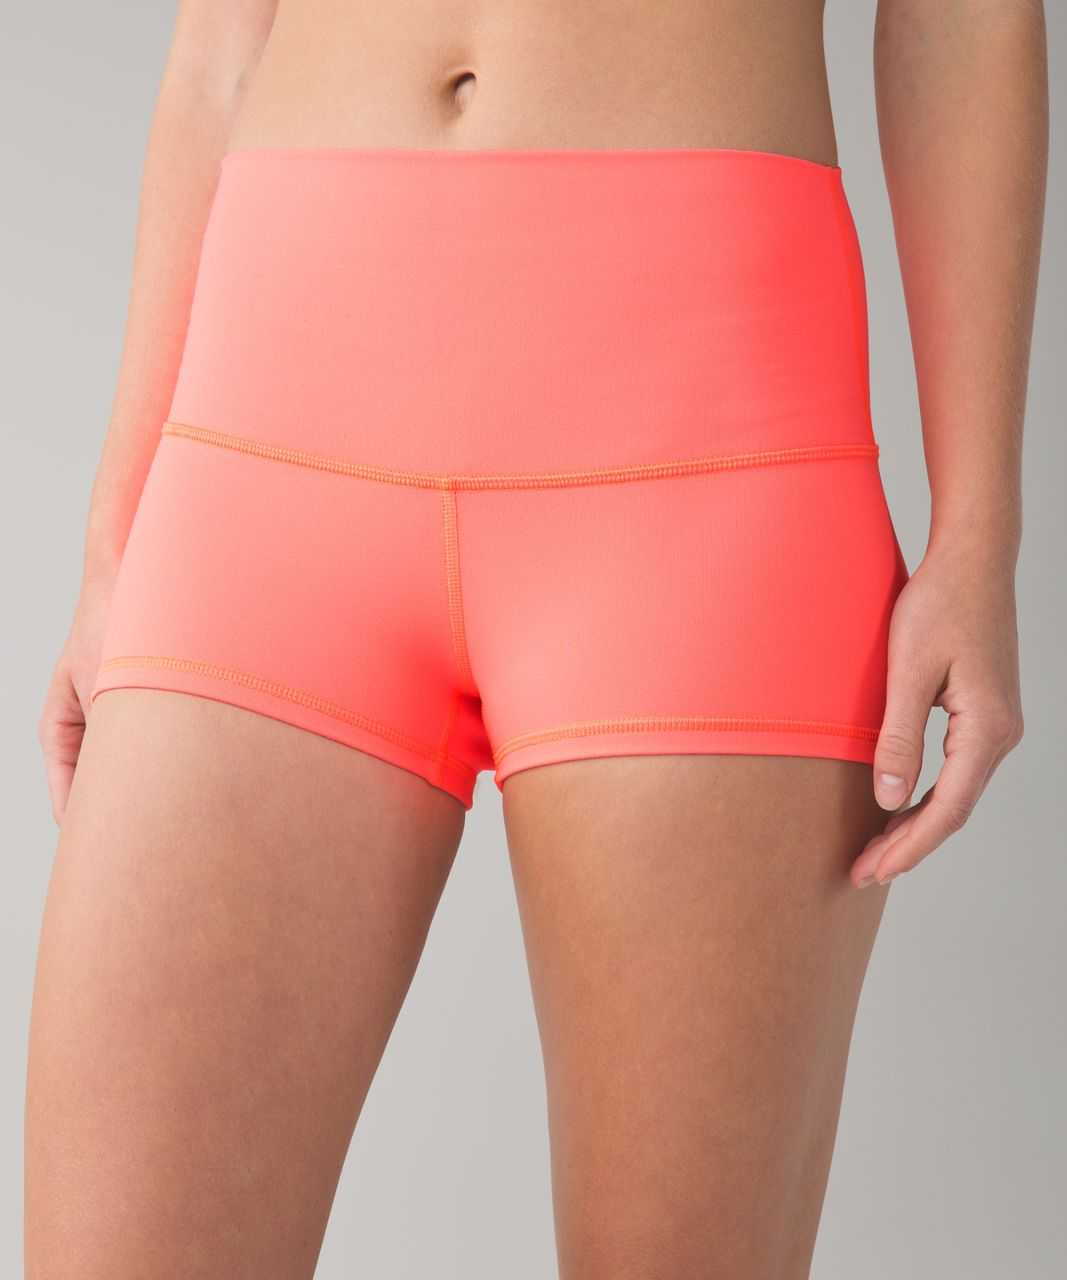 Lululemon Boogie Short (Roll Down) - Grapefruit